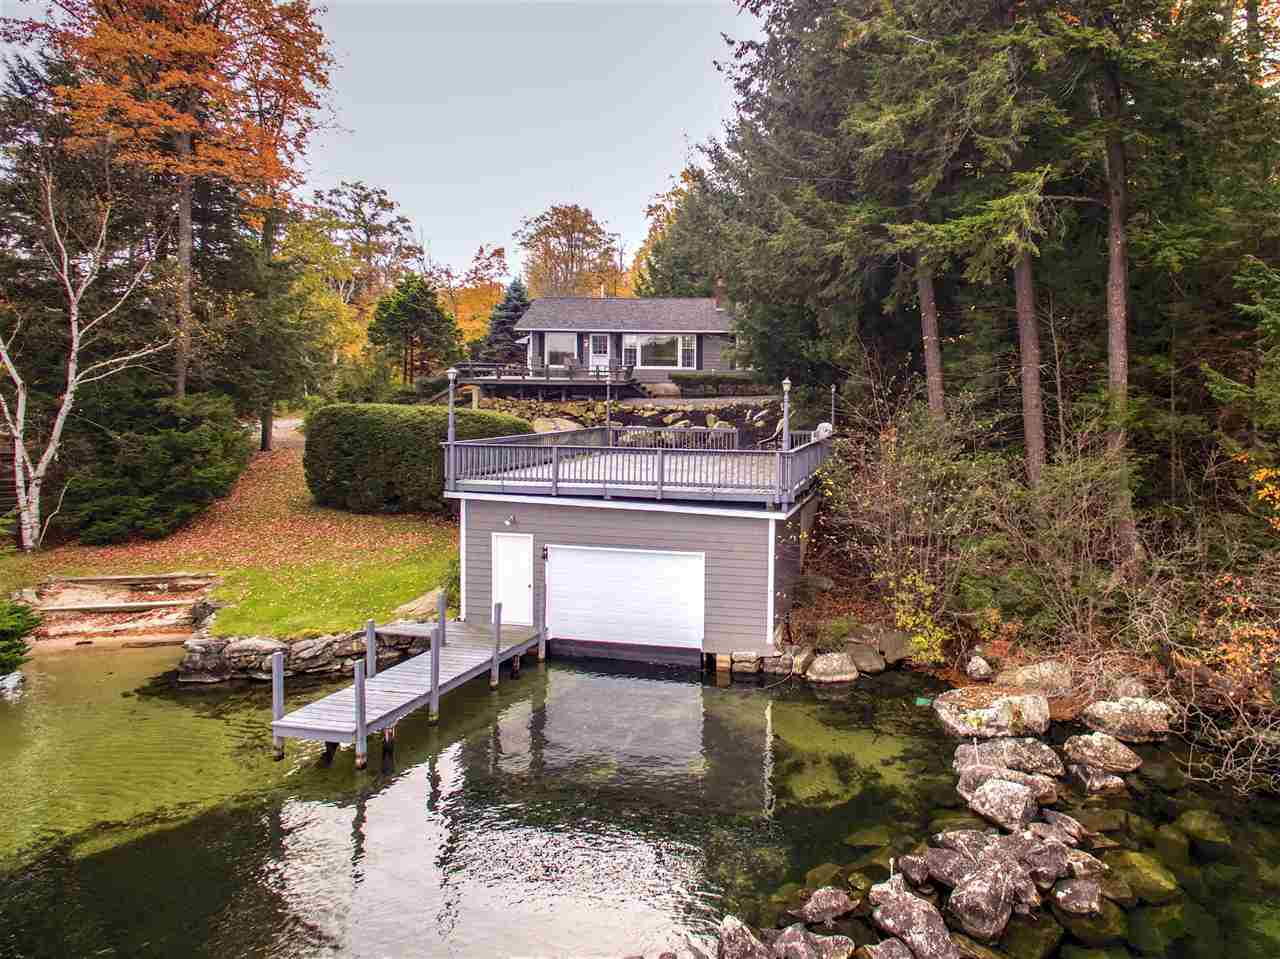 Alton NH Home mls no. 4666907 with 100 ft. owned waterfront